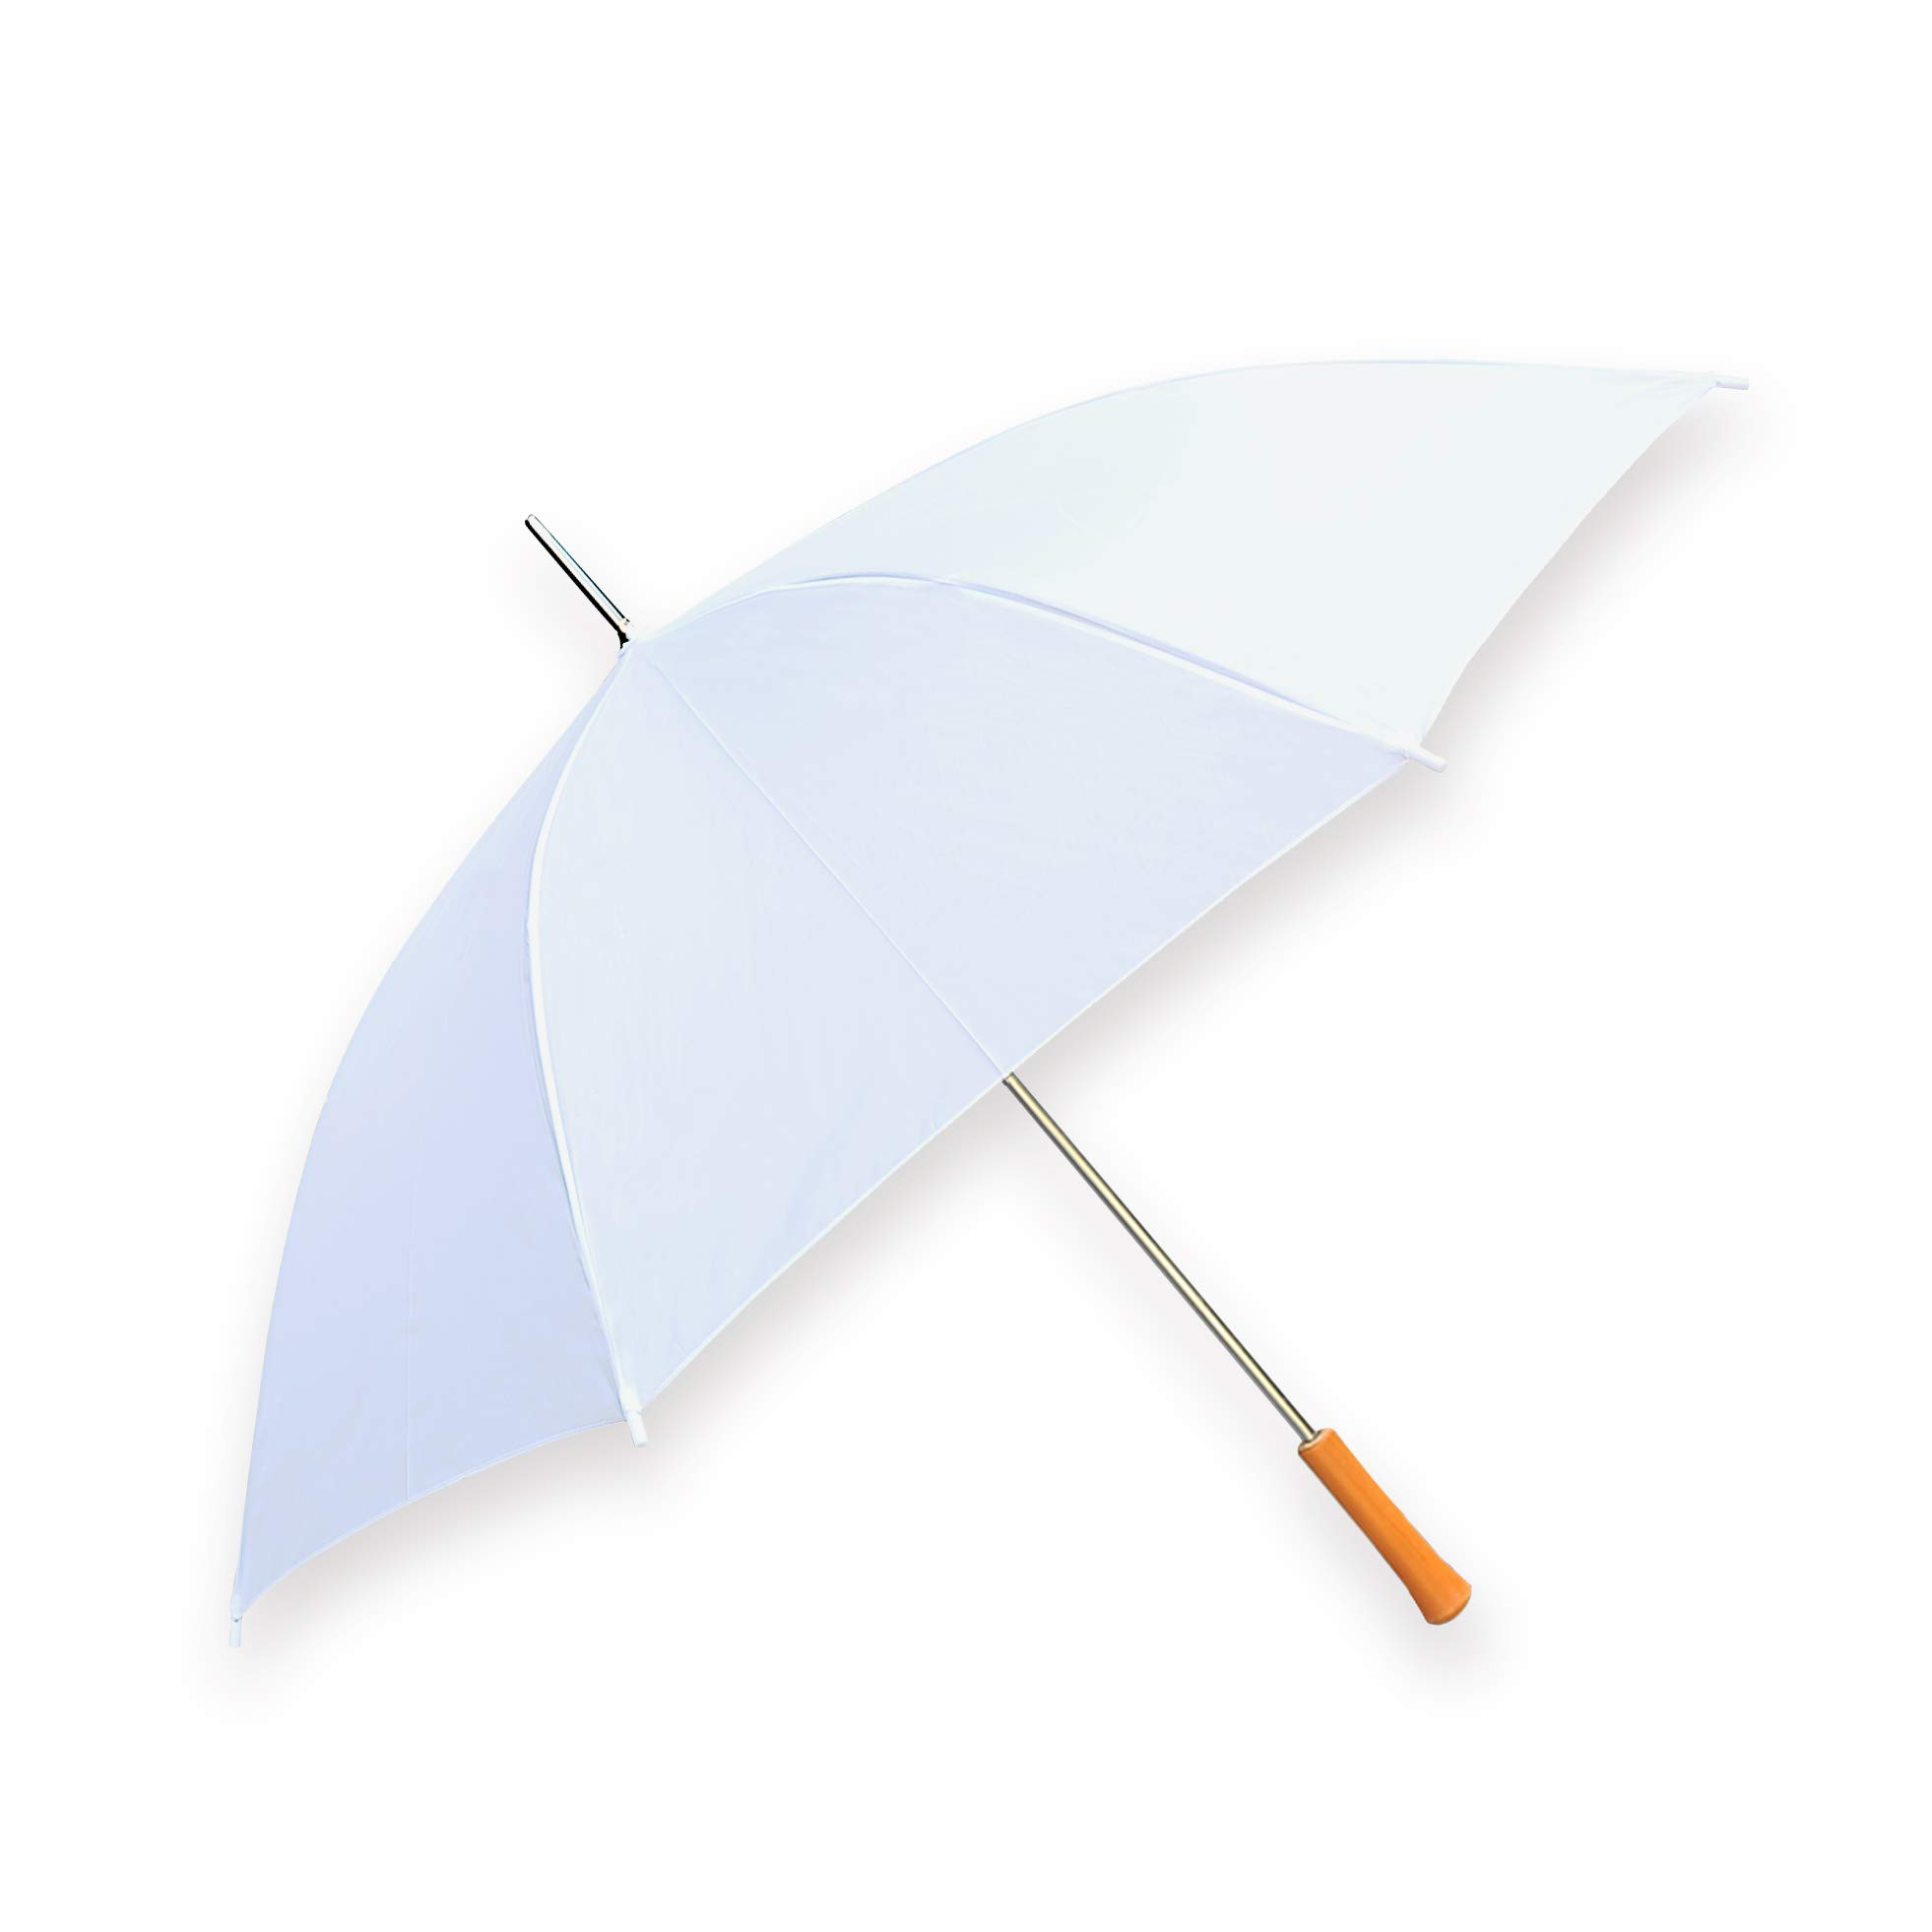 """Barton Outdoors Rain Umbrella - White - 48"""" Across - Rip-Resistant Polyester - Auto Open - Light Strong Metal Shaft and Ribs - Resin Handle - Perfect for 1 Person"""